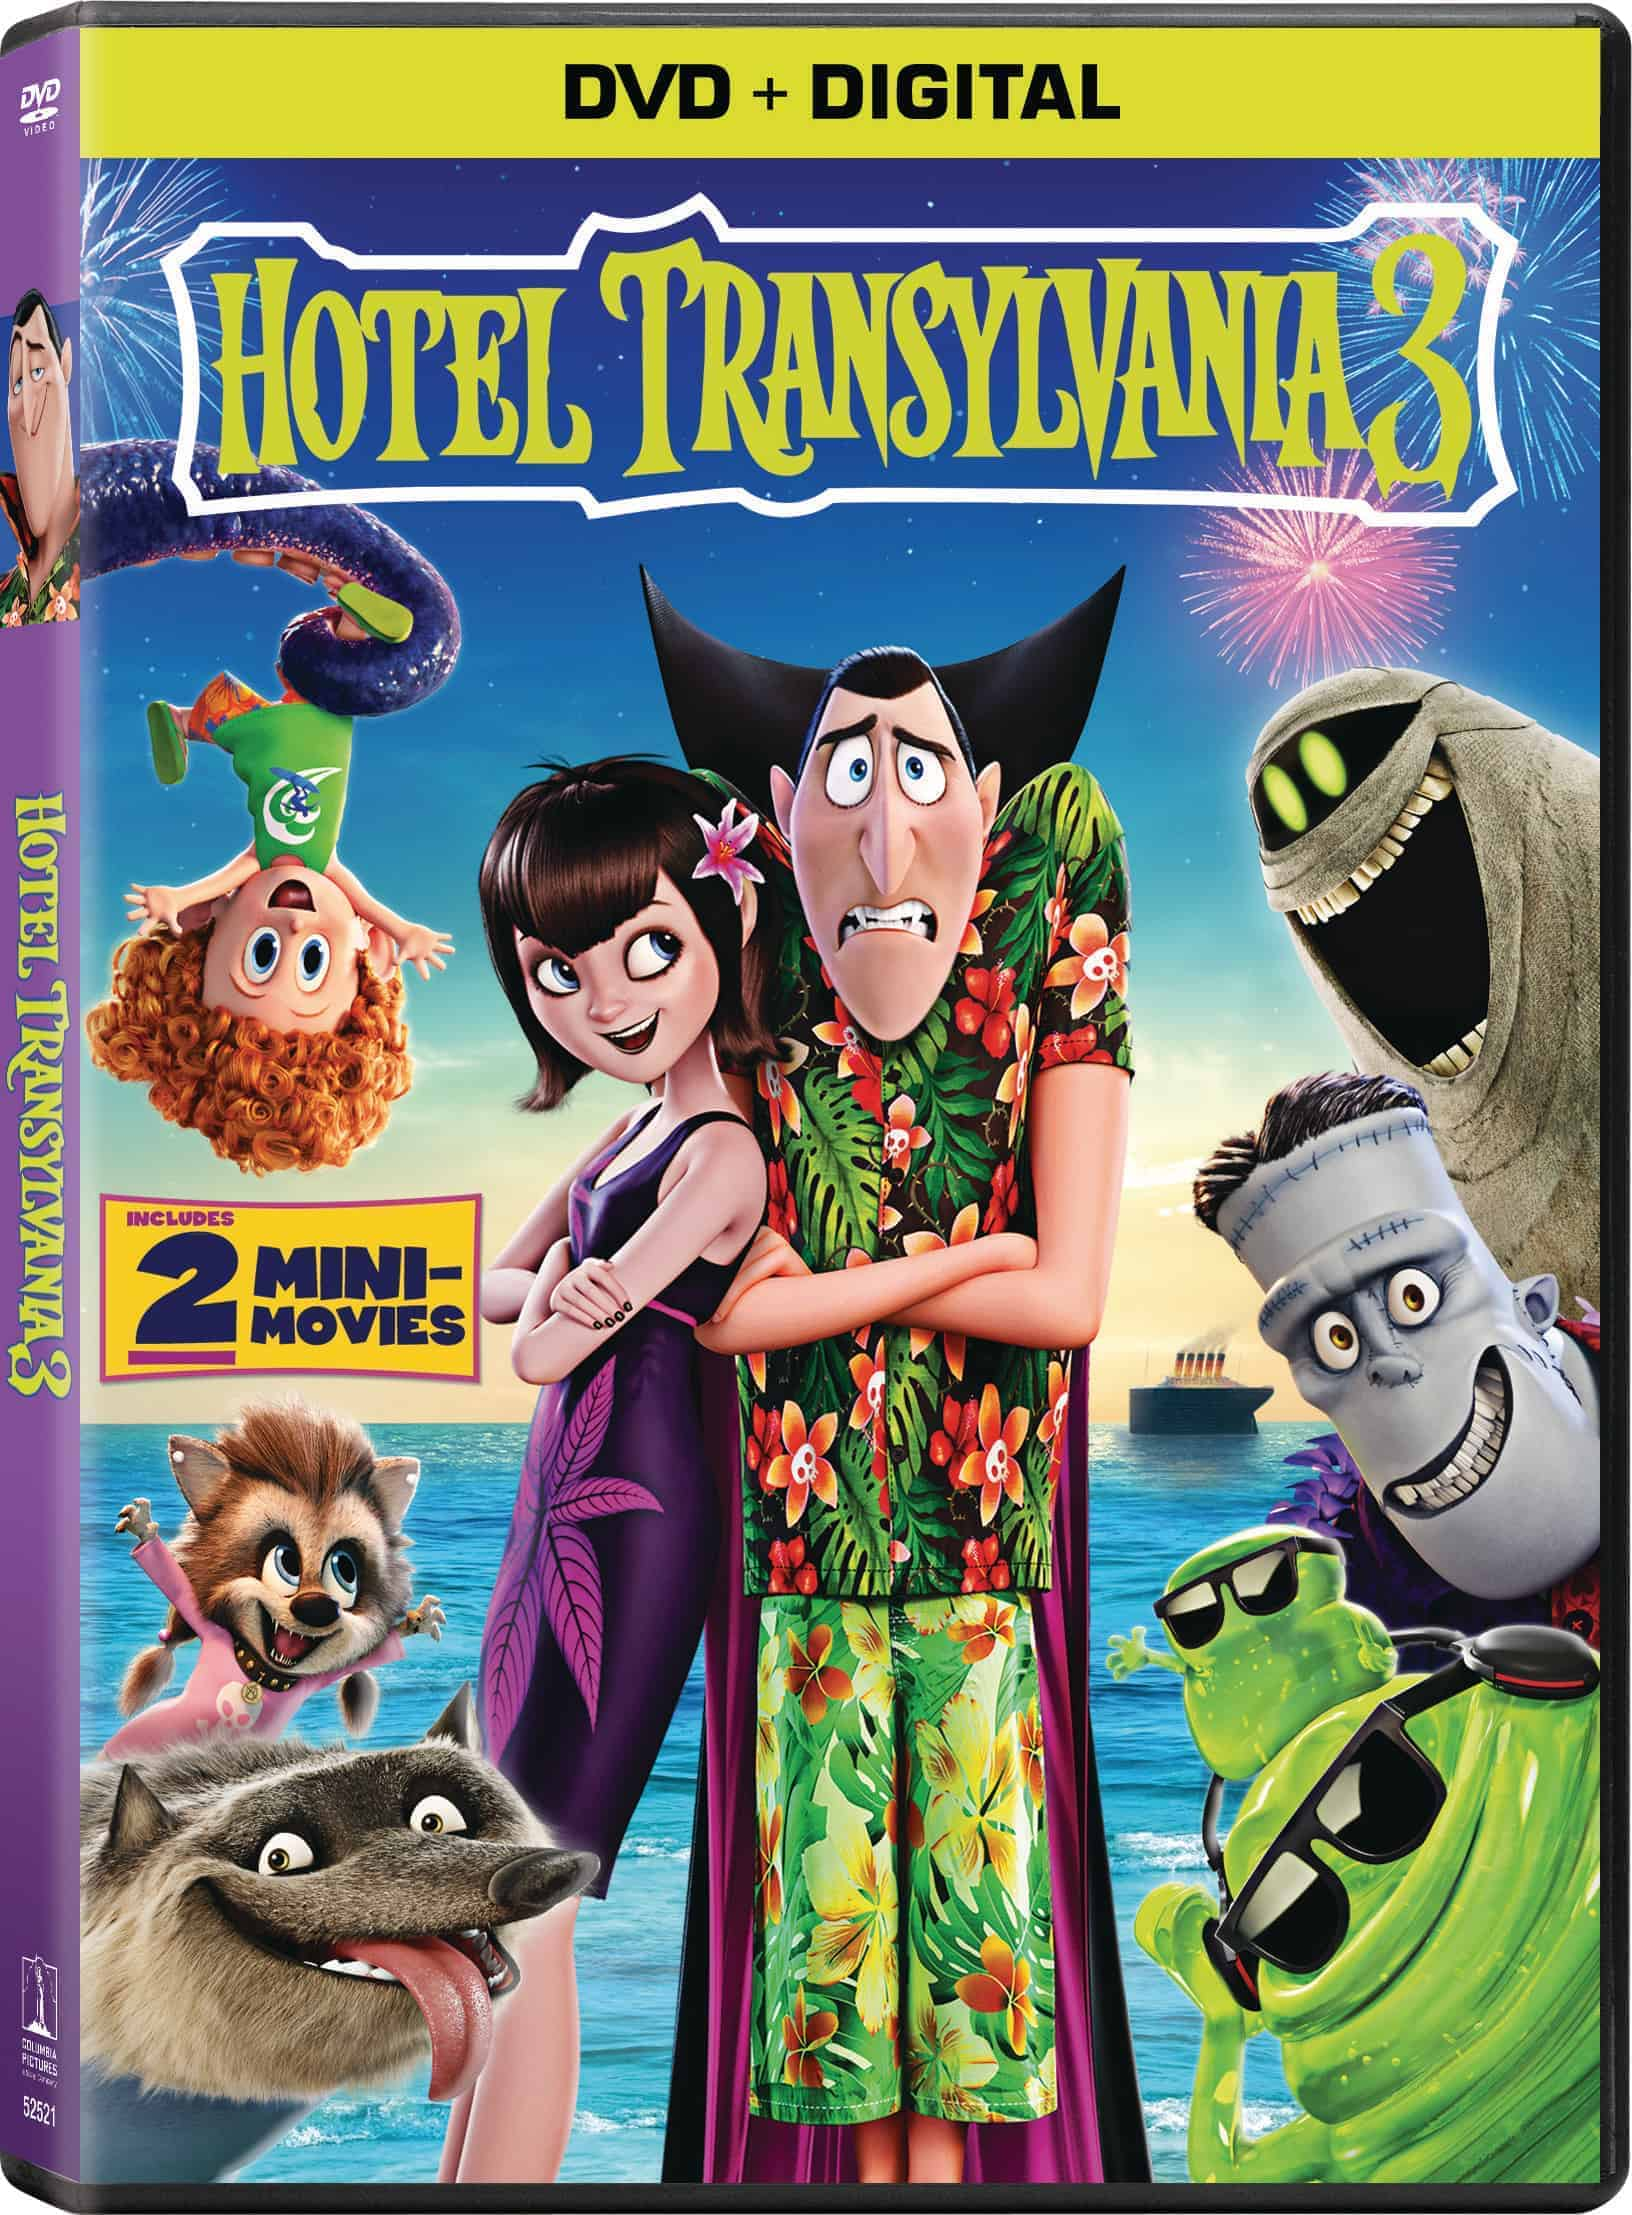 Win Hotel Transylvania 3 On DVD + Trick-Or-Treating Pillowcase